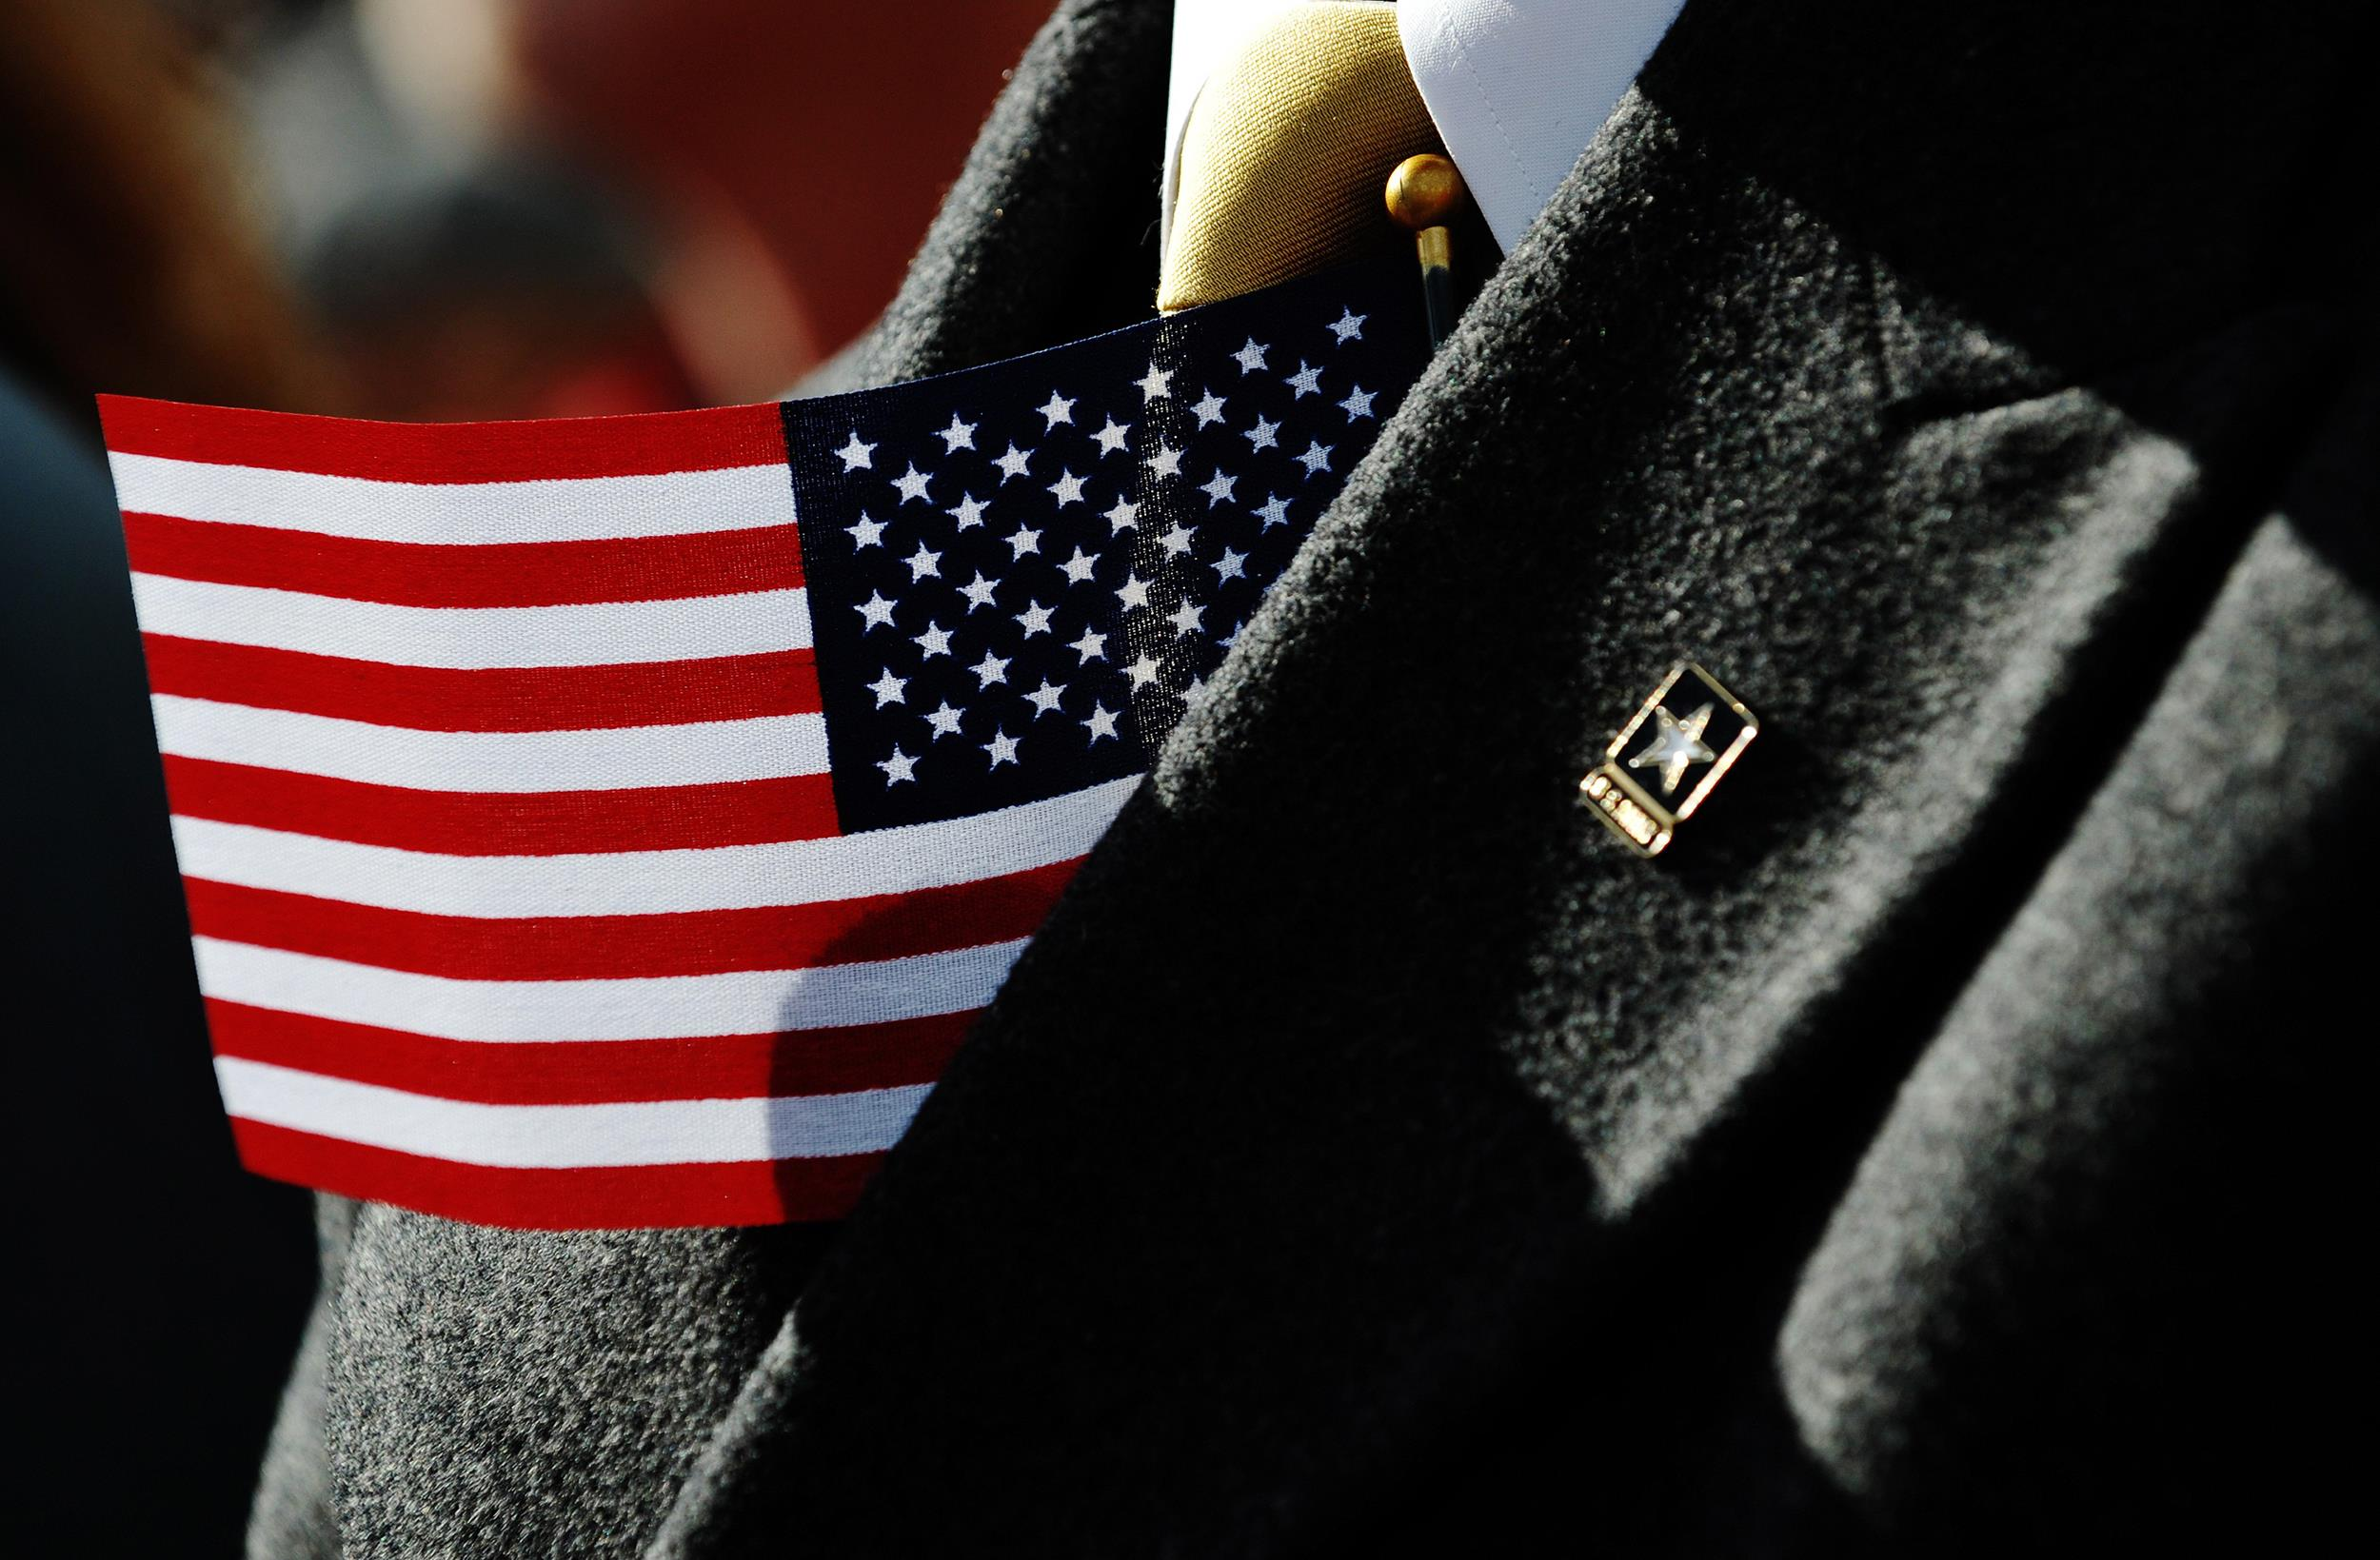 Image: A U.S flag is tucked into the jacket of a man